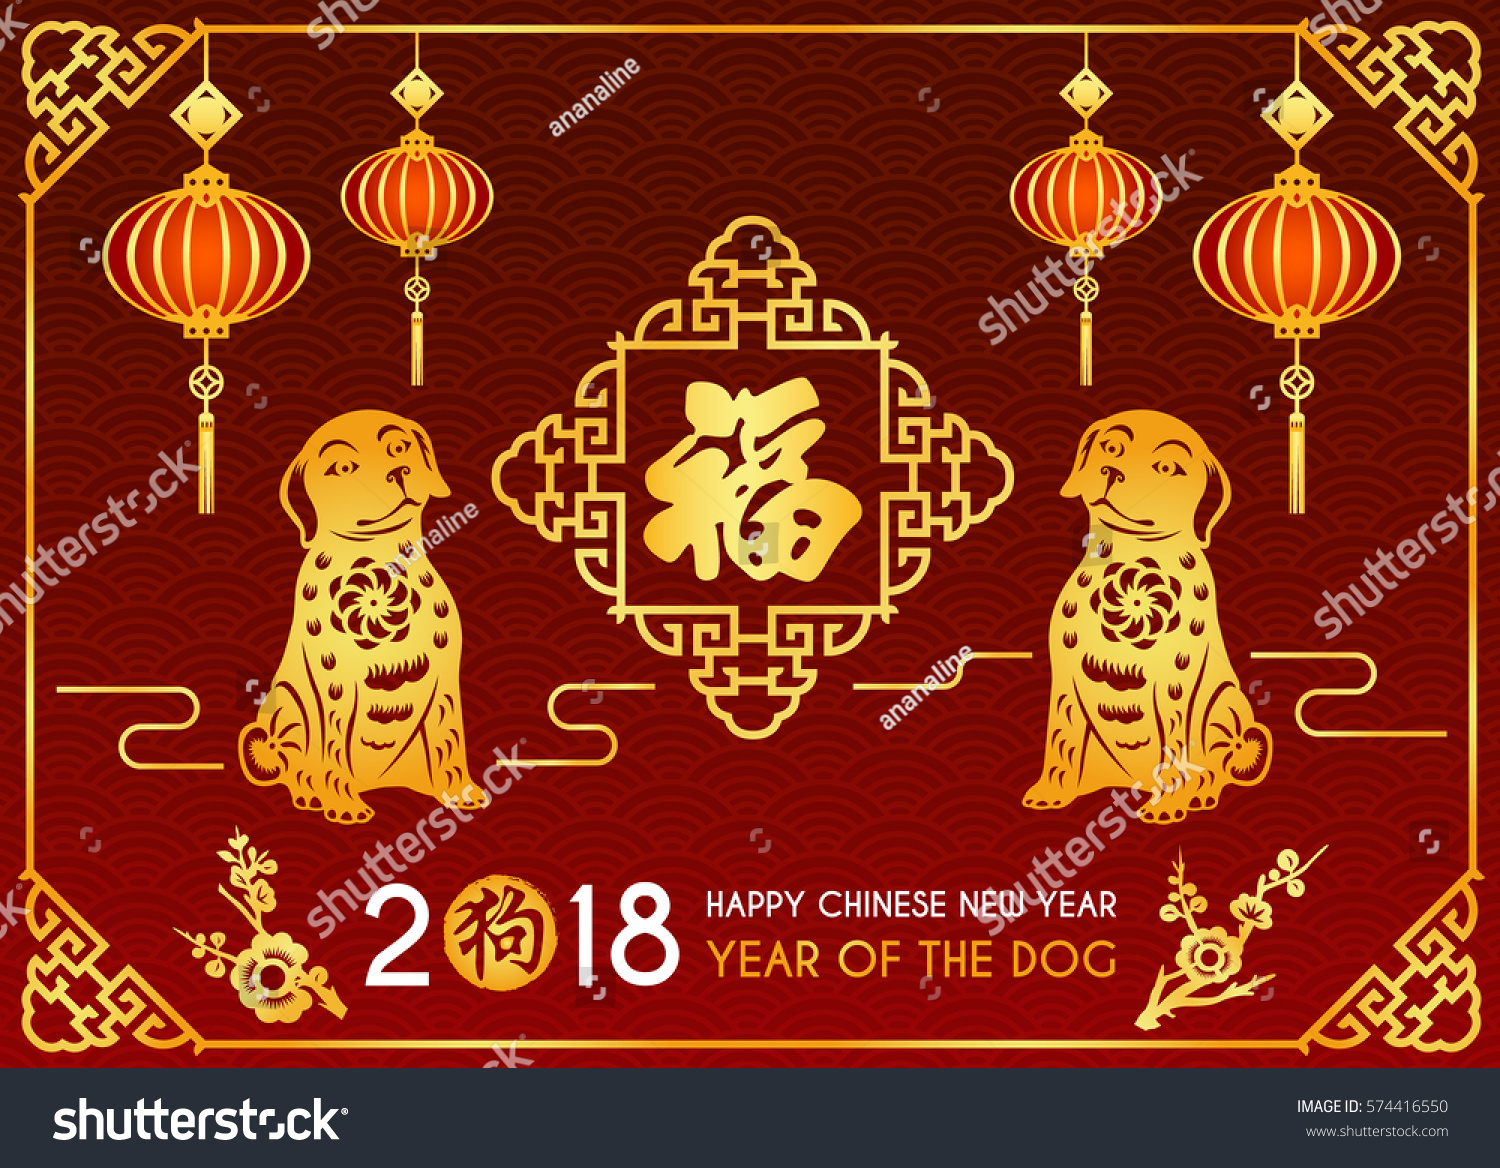 Happy chinese new year 2018 card stock vector 574416550 shutterstock happy chinese new year 2018 card is lanterns 2 gold dog and chinese word mean kristyandbryce Choice Image